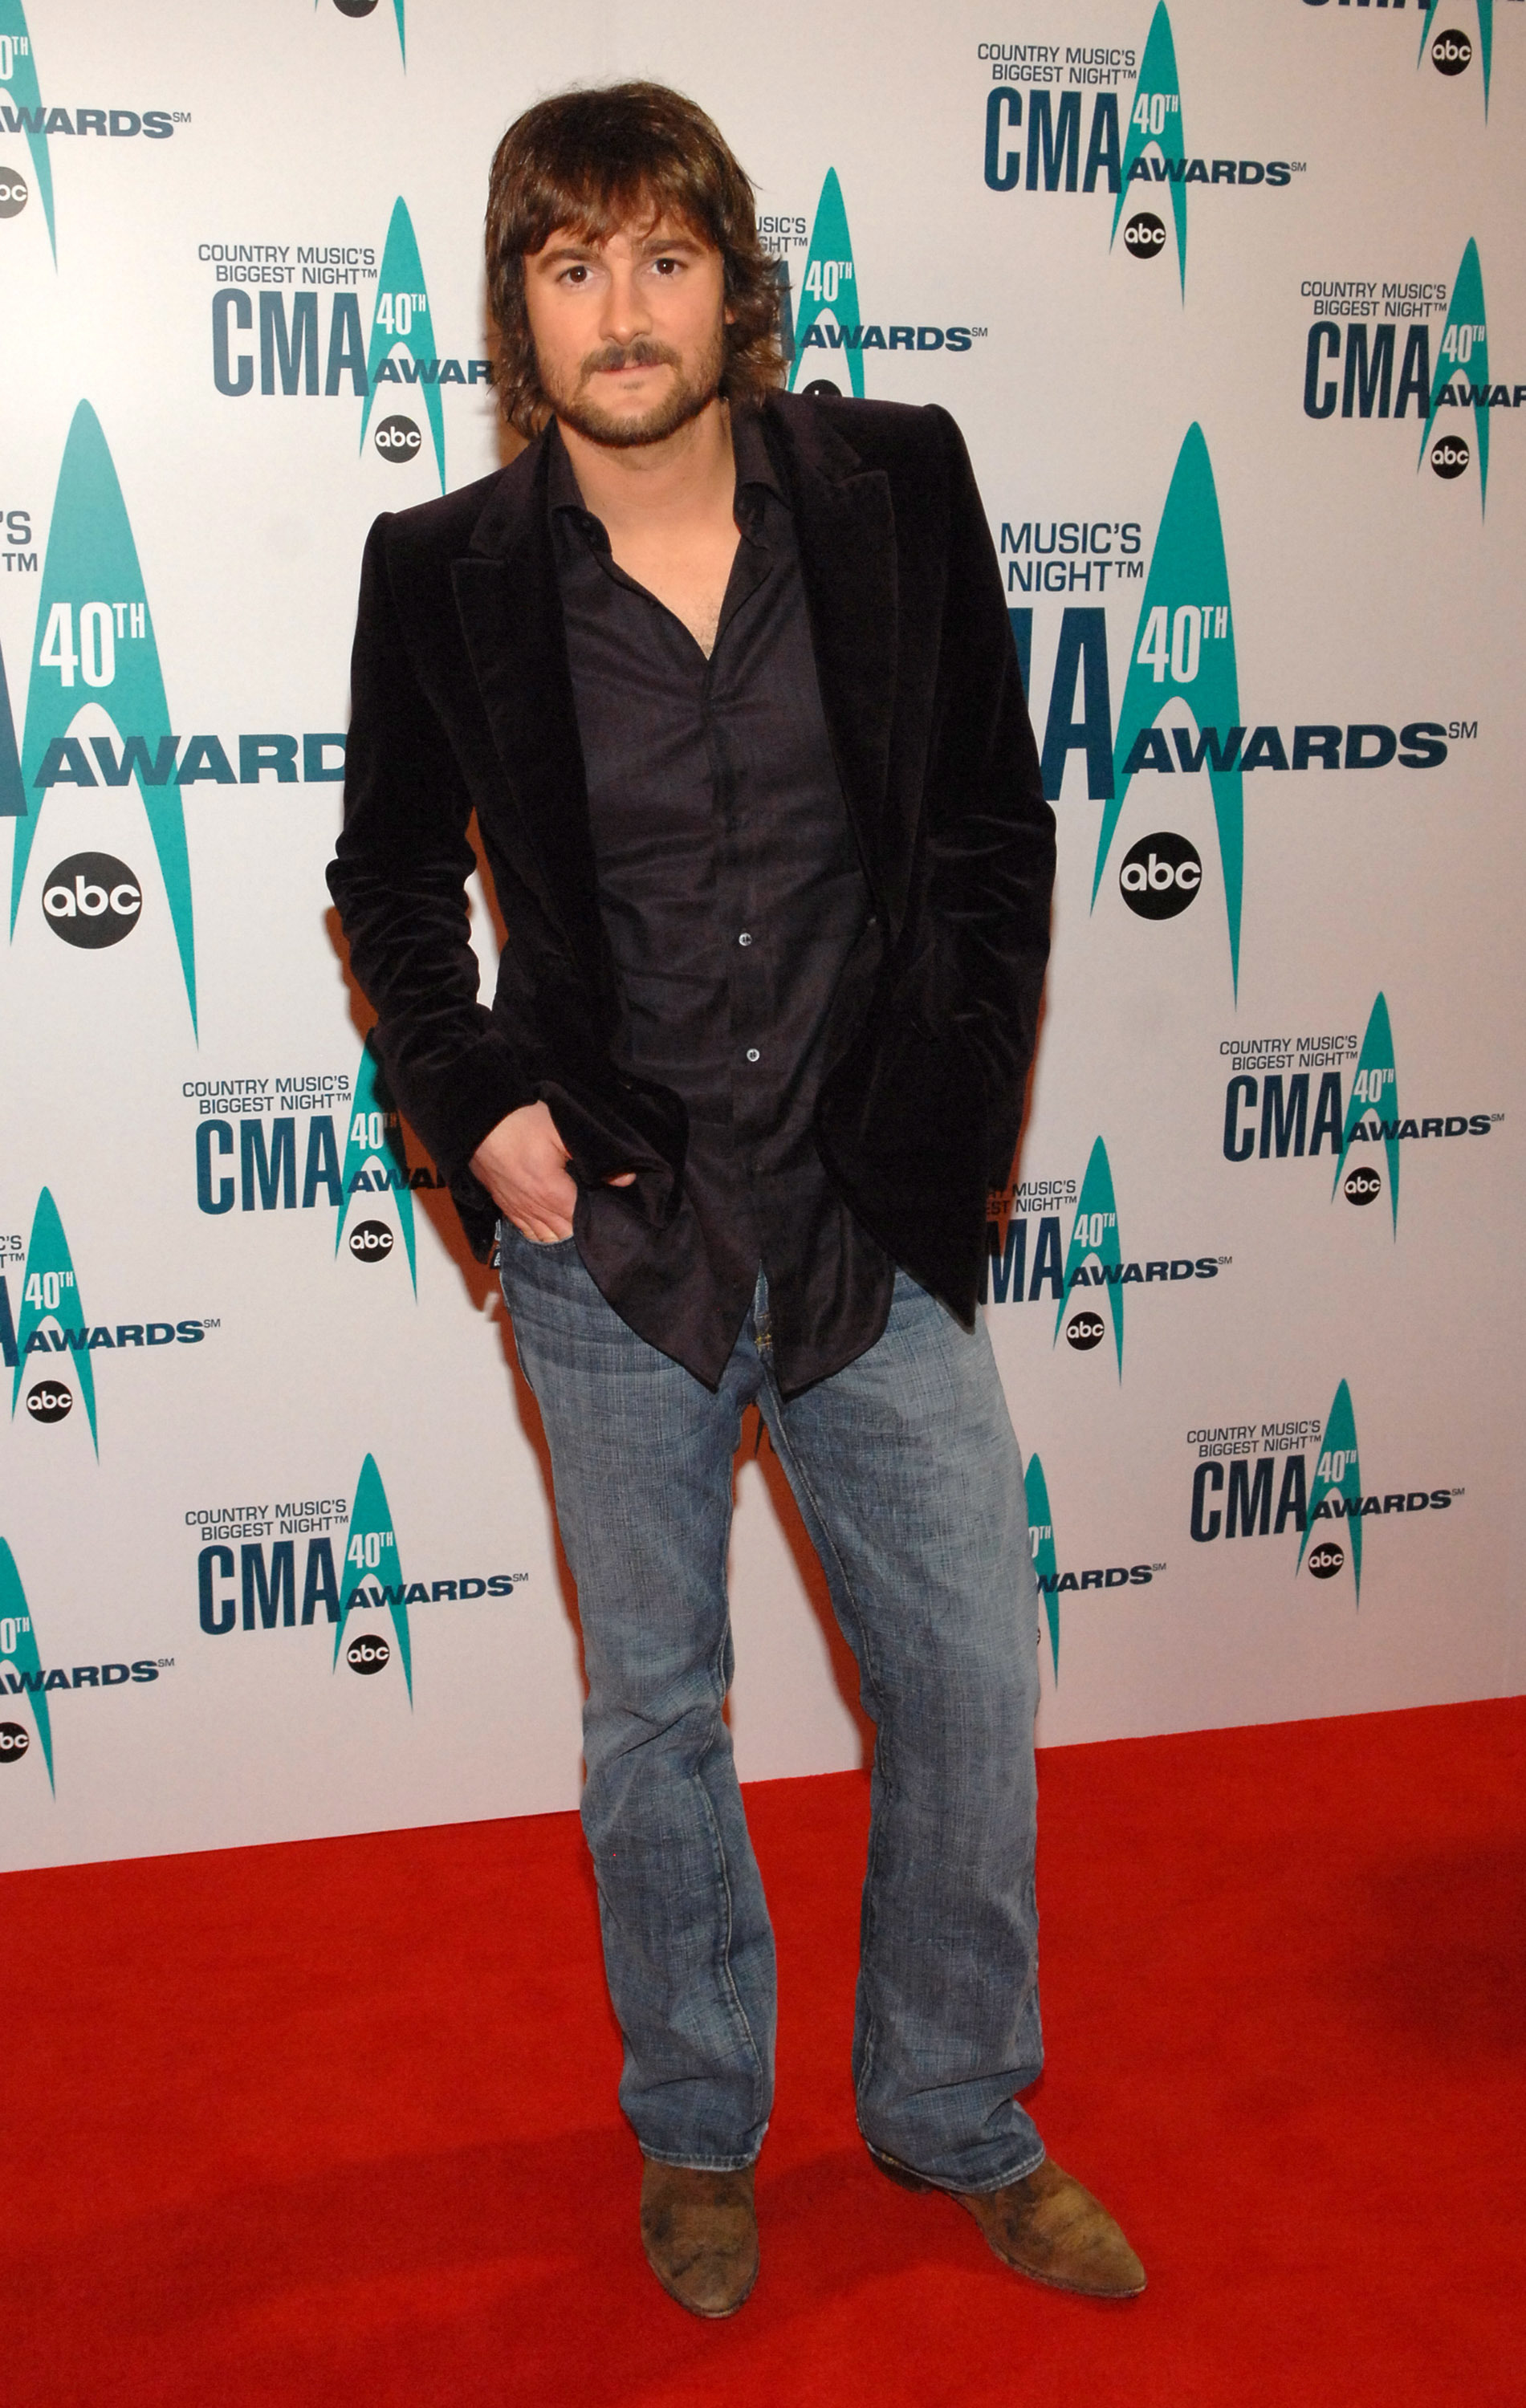 Eric Church attends the 40th Annual CMA Awards at the Gaylord Entertainment Center in Nashville on Nov. 6, 2006.